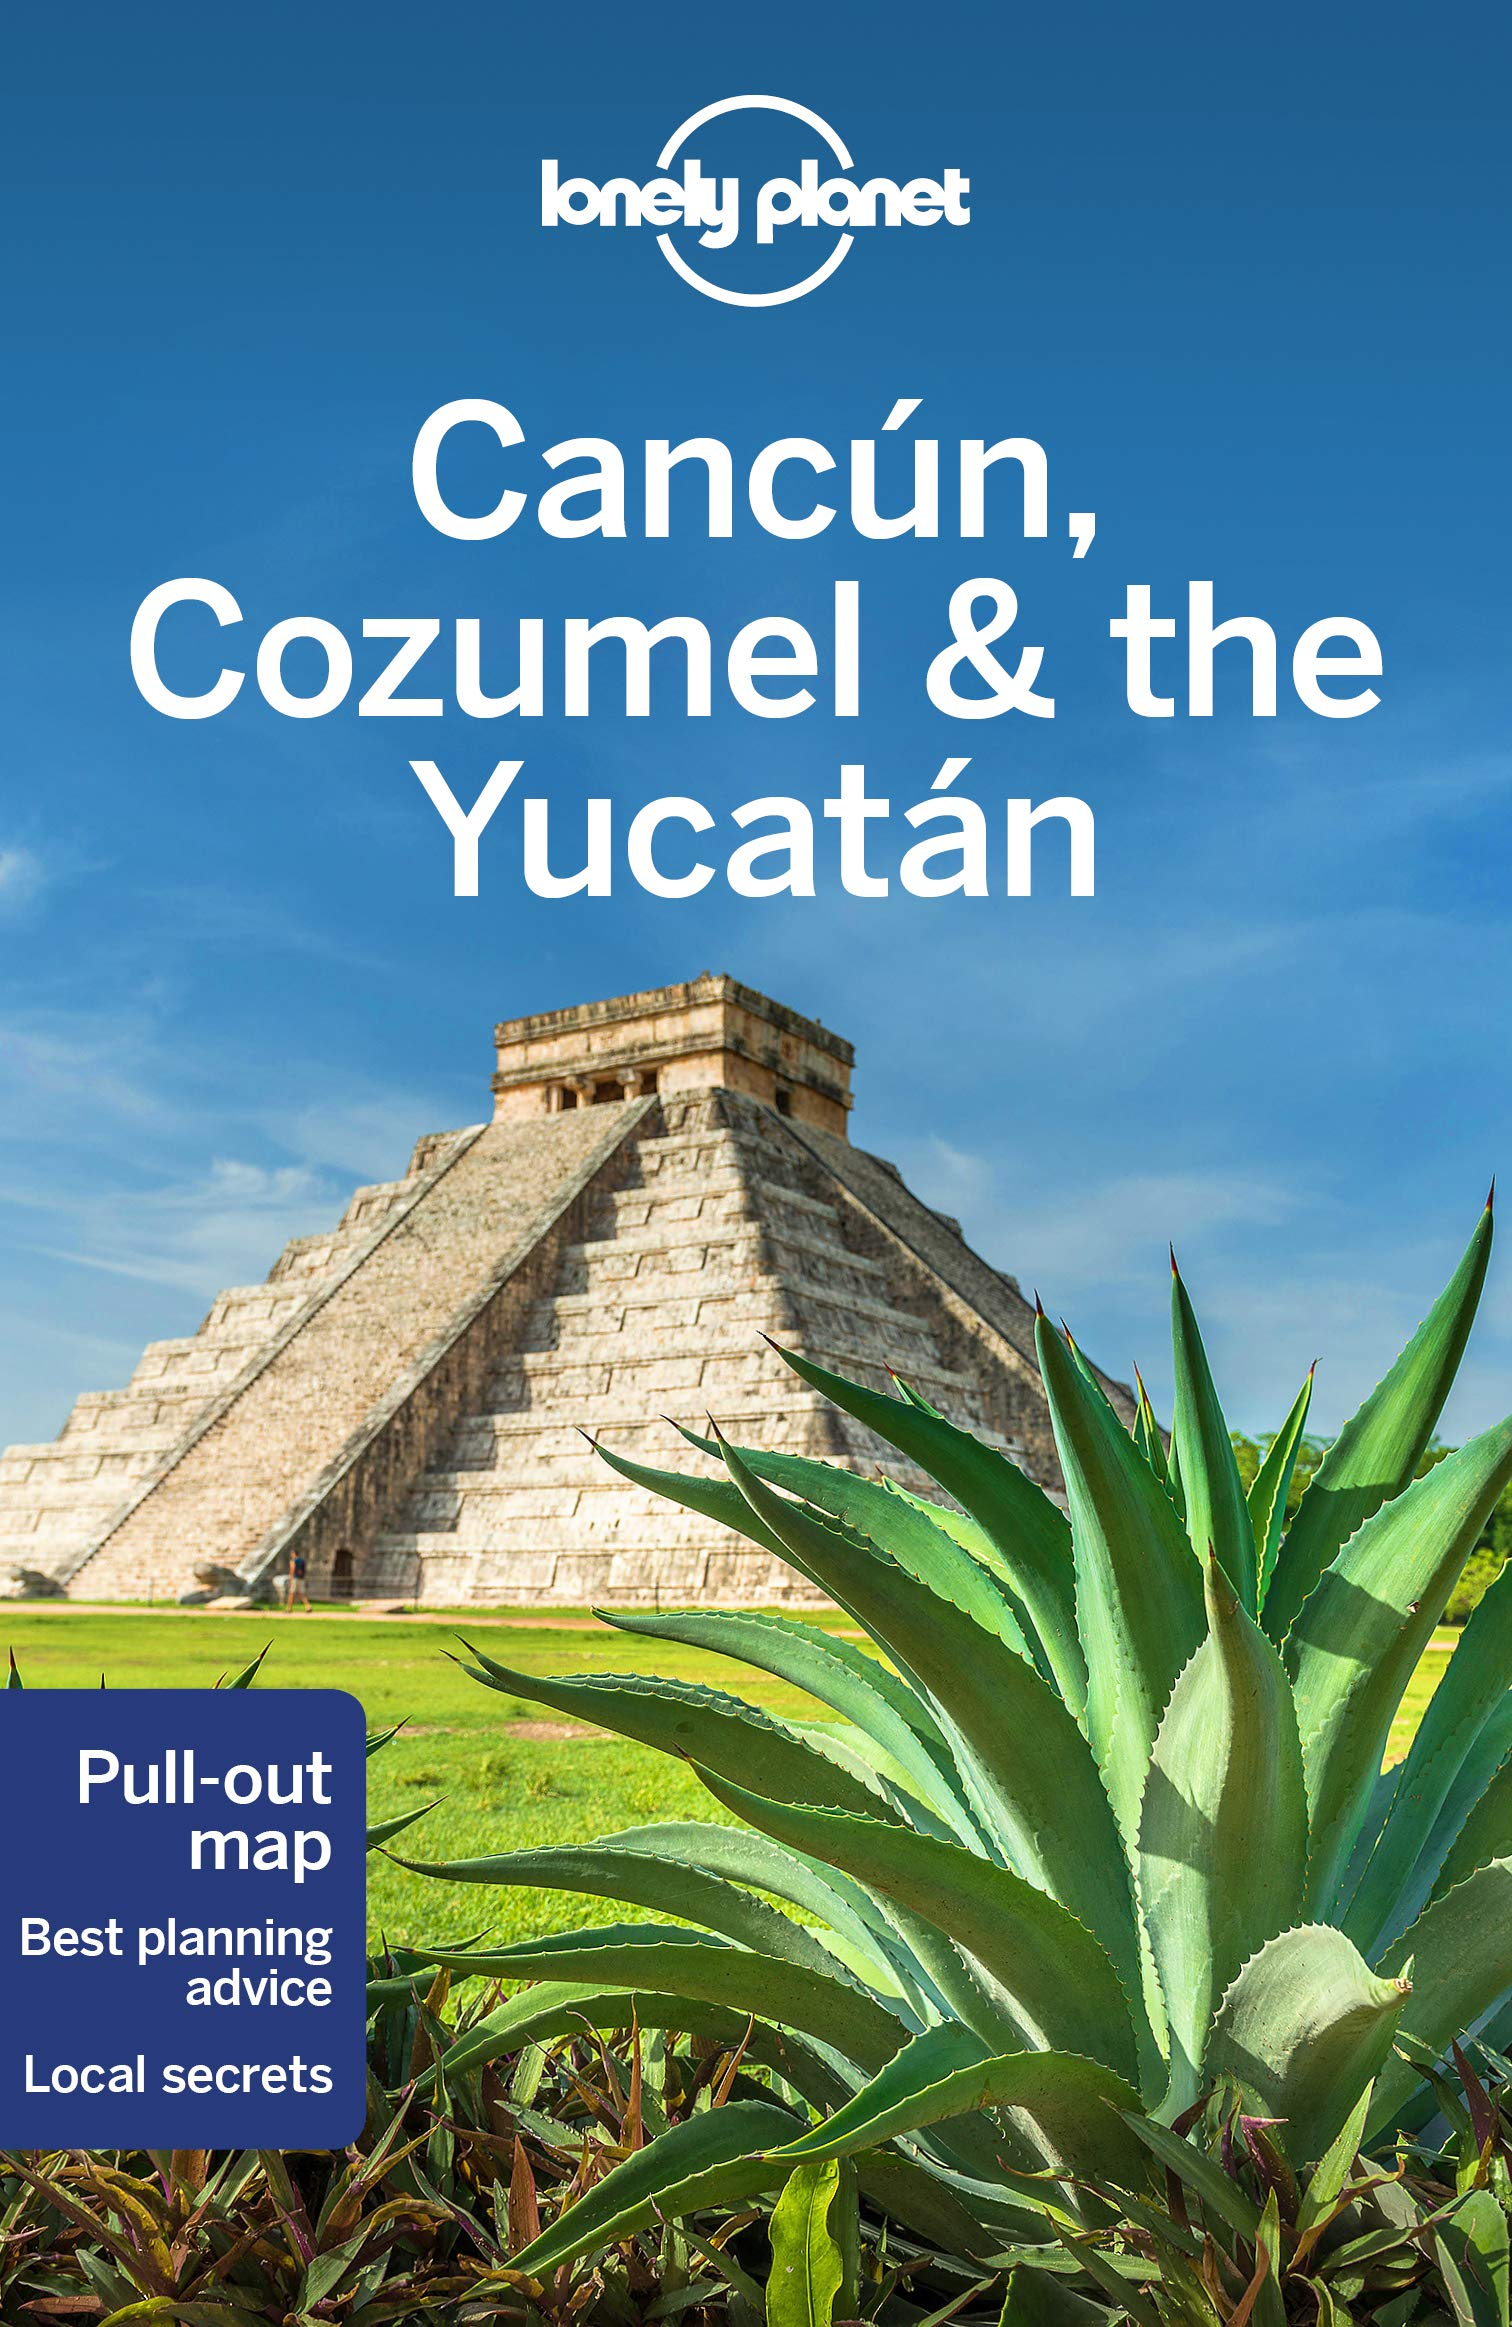 Lonely Planet Cancun, Cozumel & the Yucatan (Travel Guide) by Lonely Planet